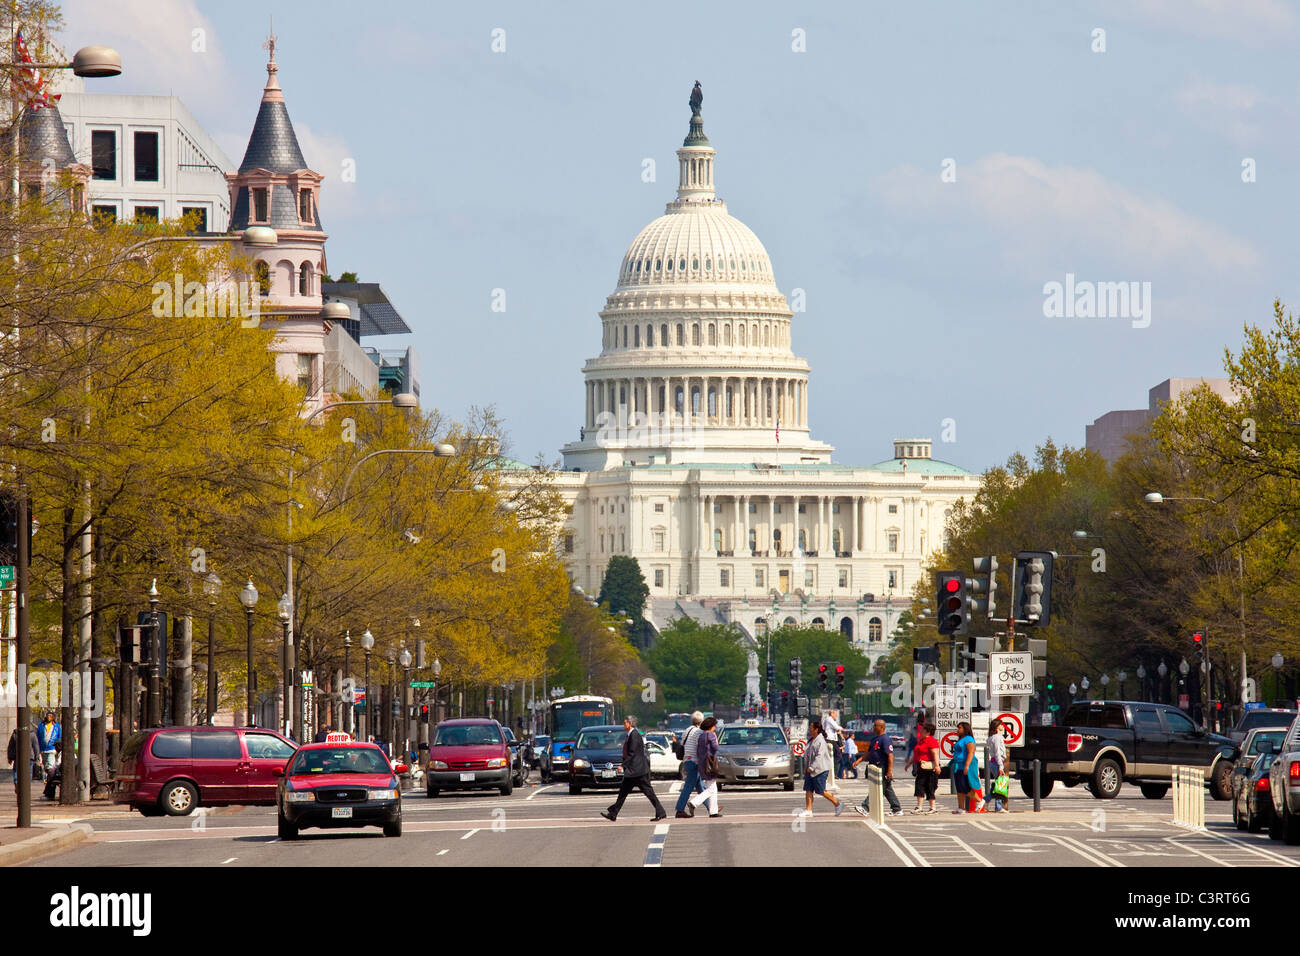 Capitol Building, Washington DC Photo Stock